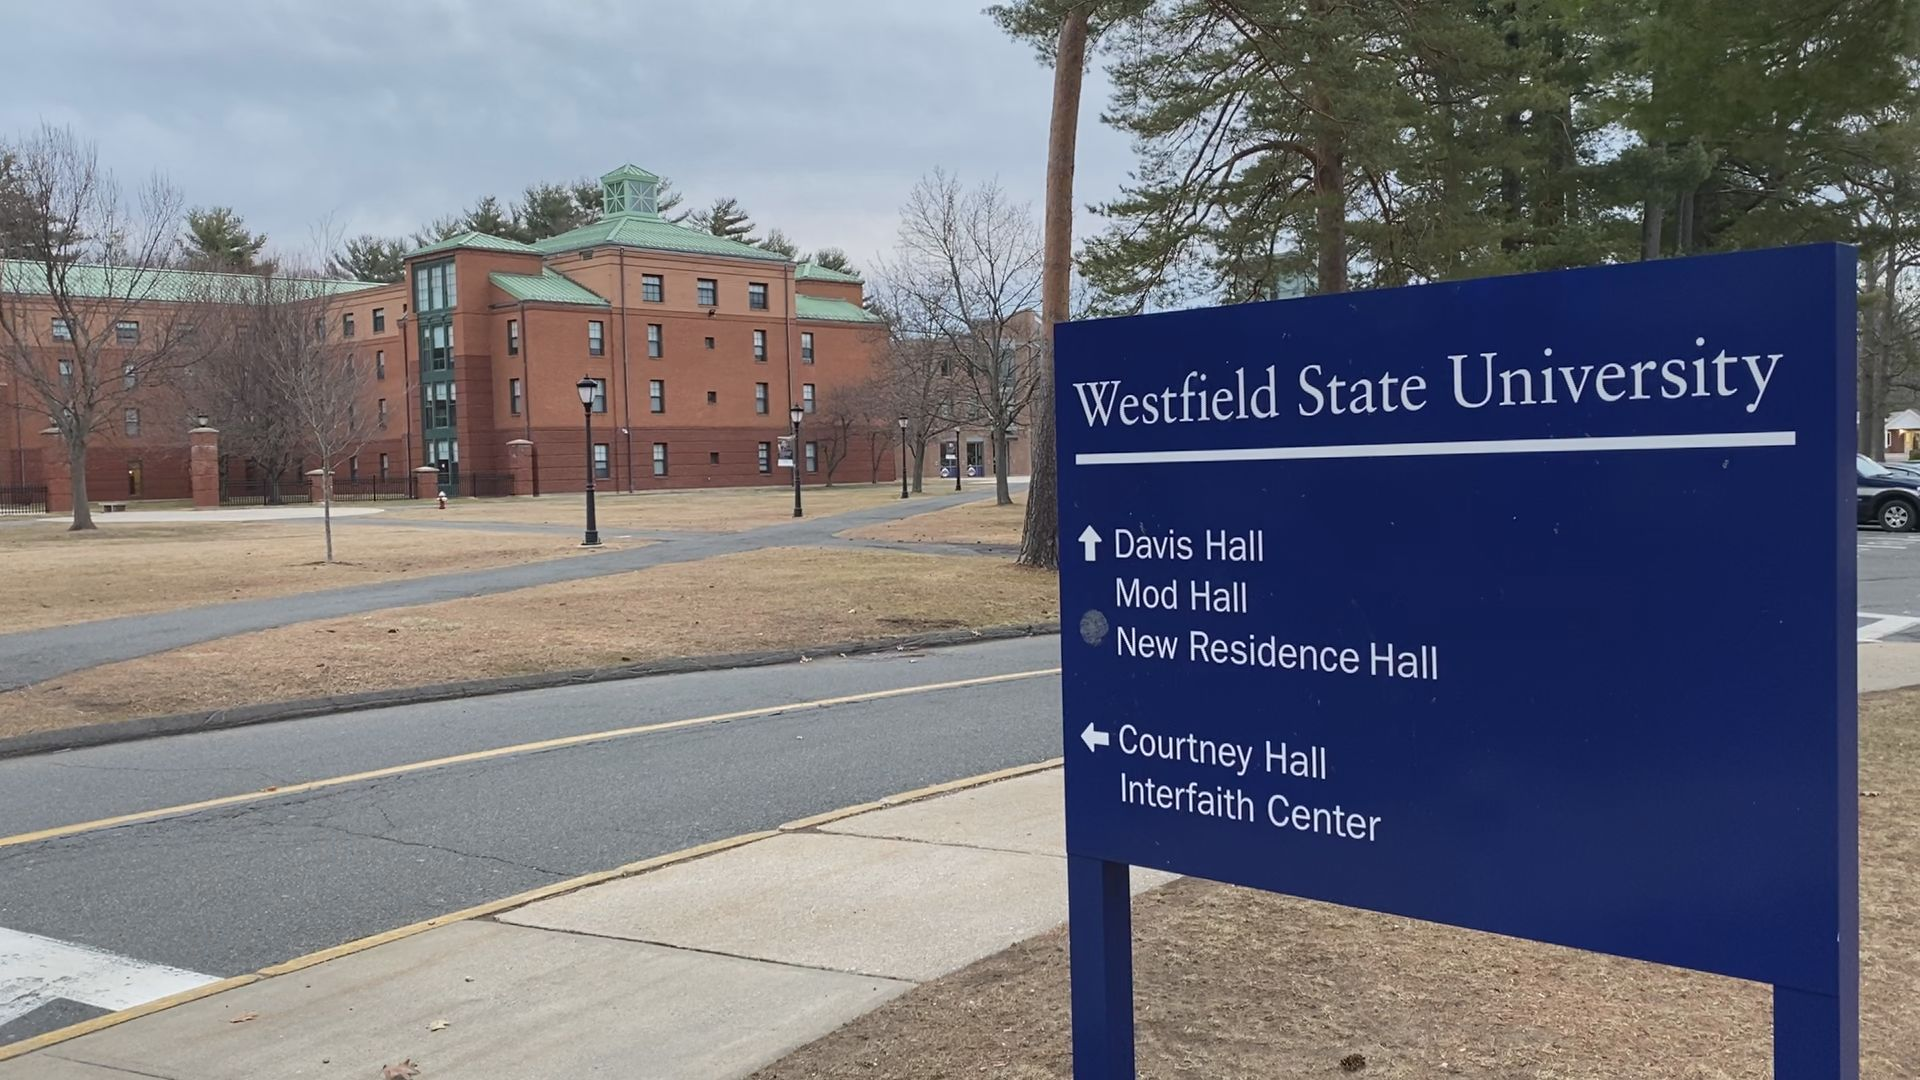 Westfield Ma Christmas 2020 Westfield State University postpones Veterans Day event | WWLP